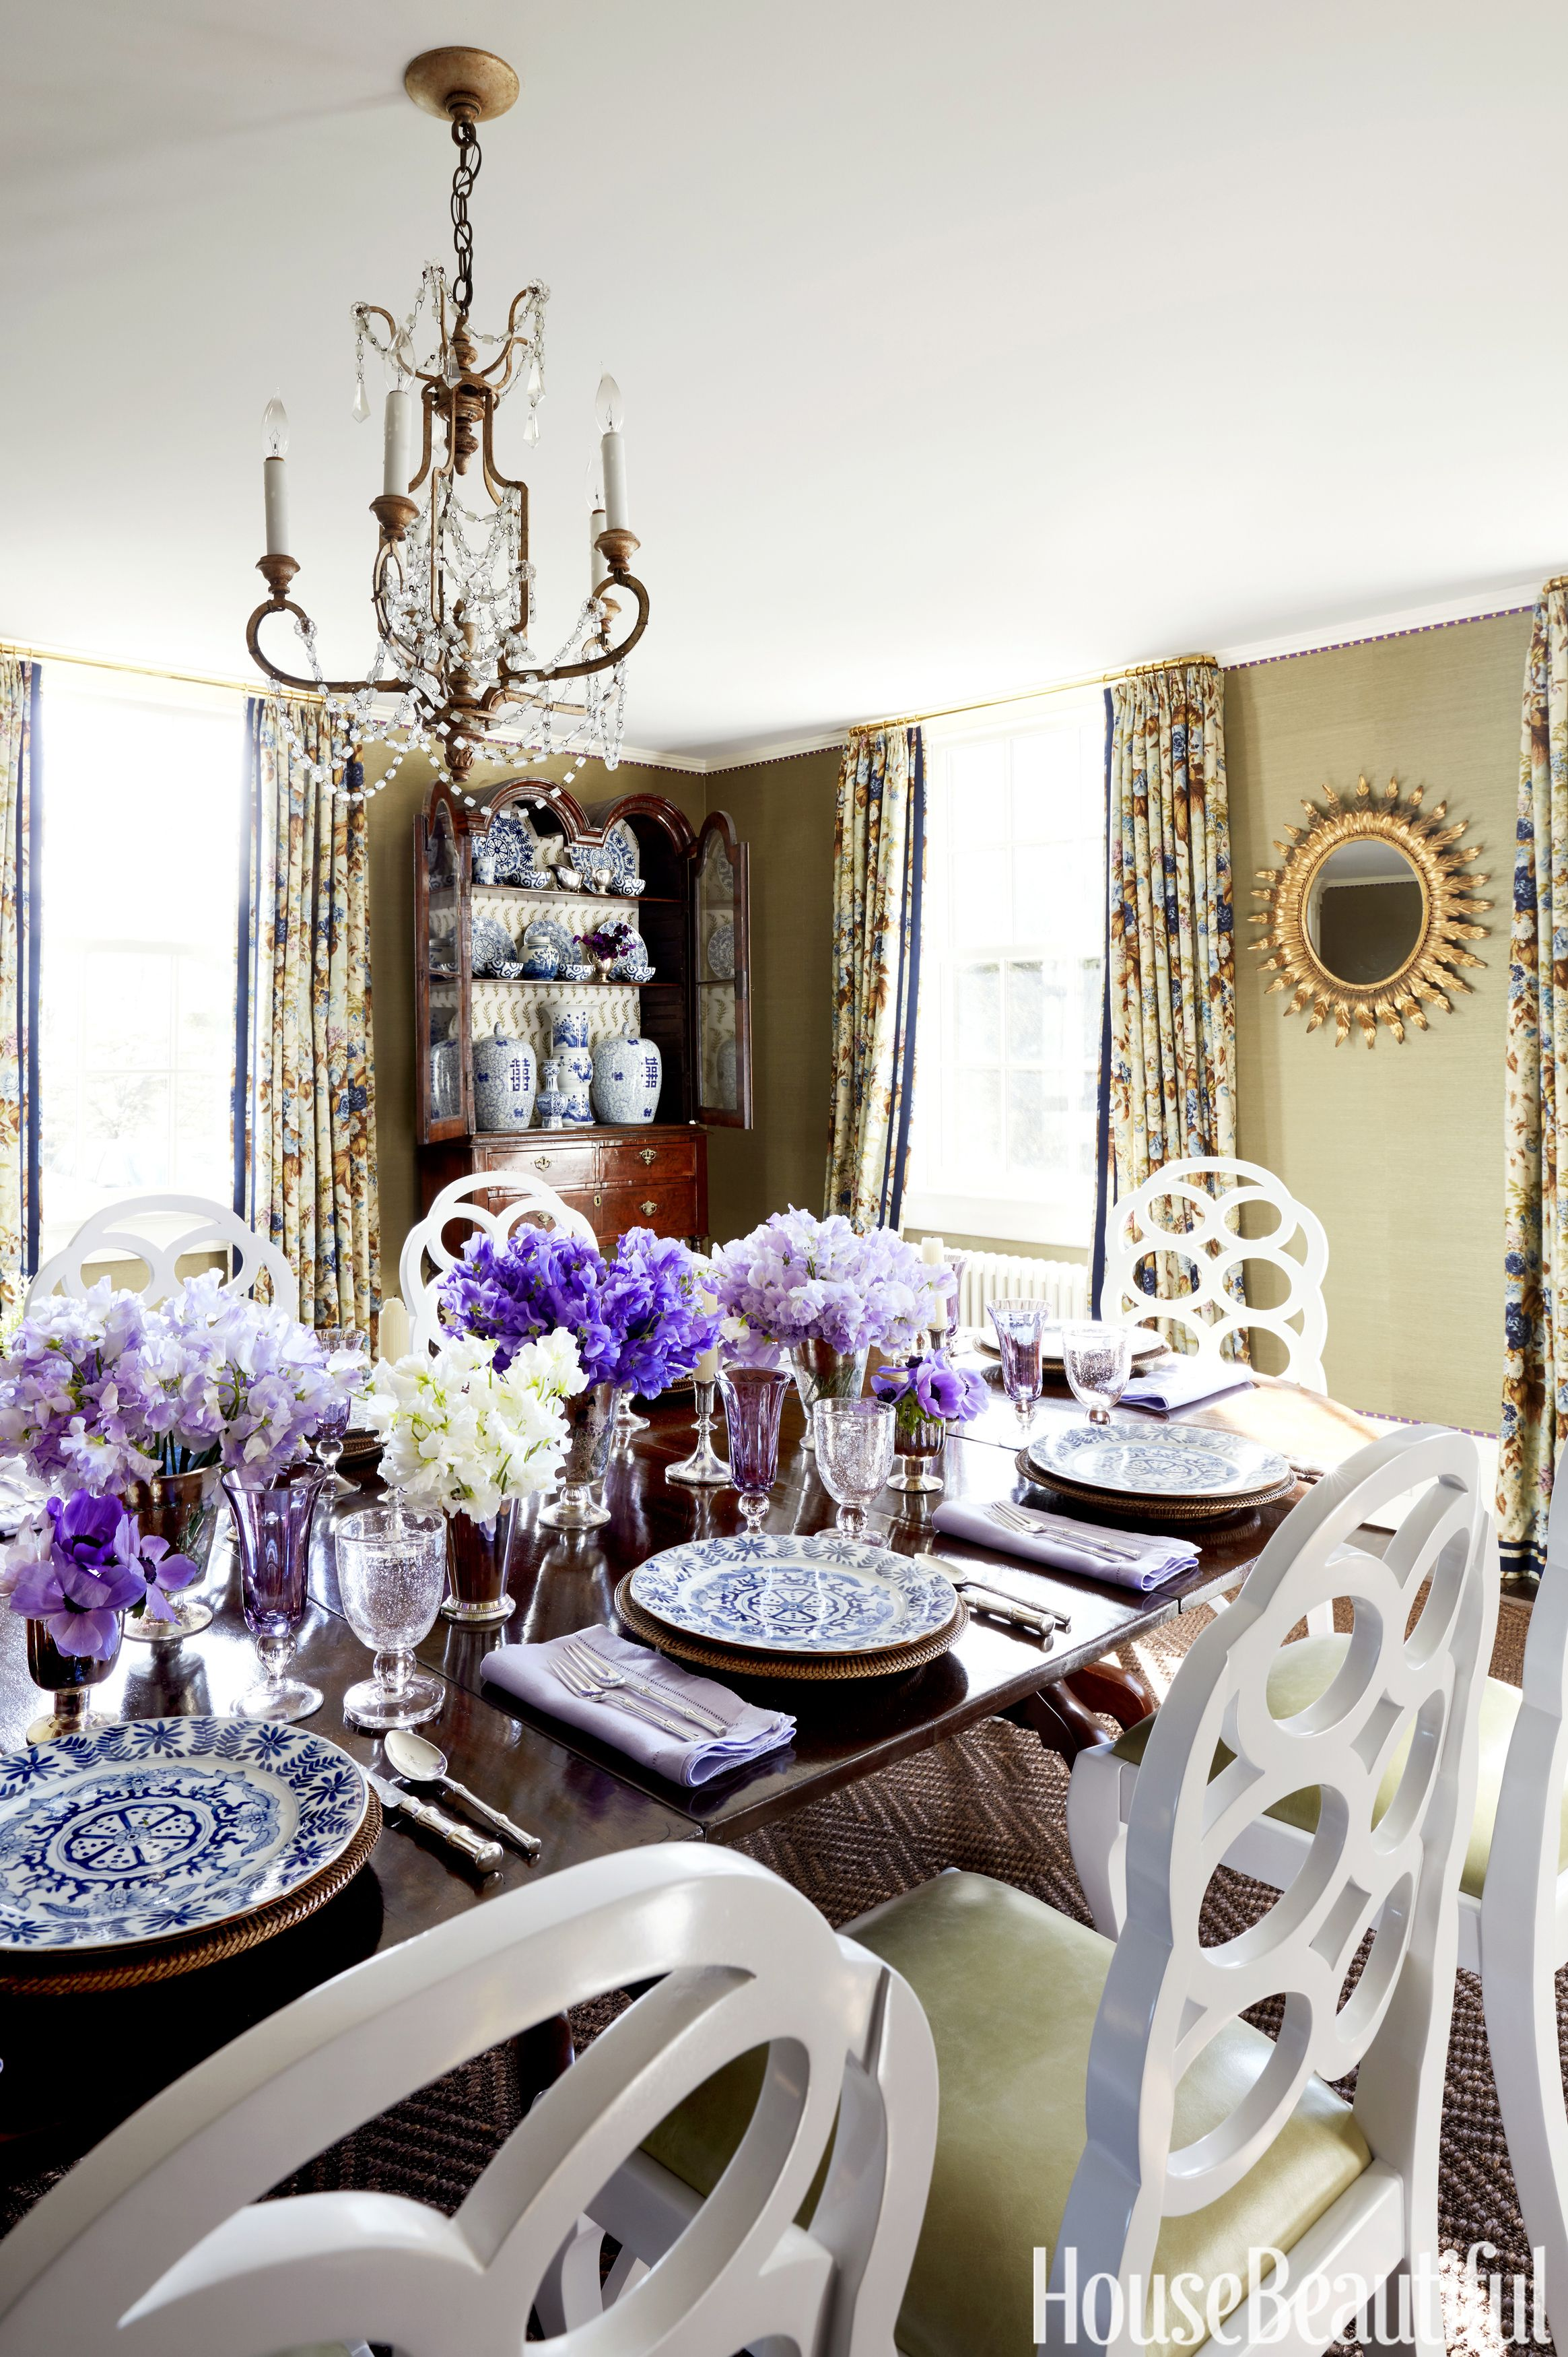 Ashley Whittaker Delectable Inside A Colorful Farmhouse  Ashley Whittaker Designs An 1823 Design Inspiration